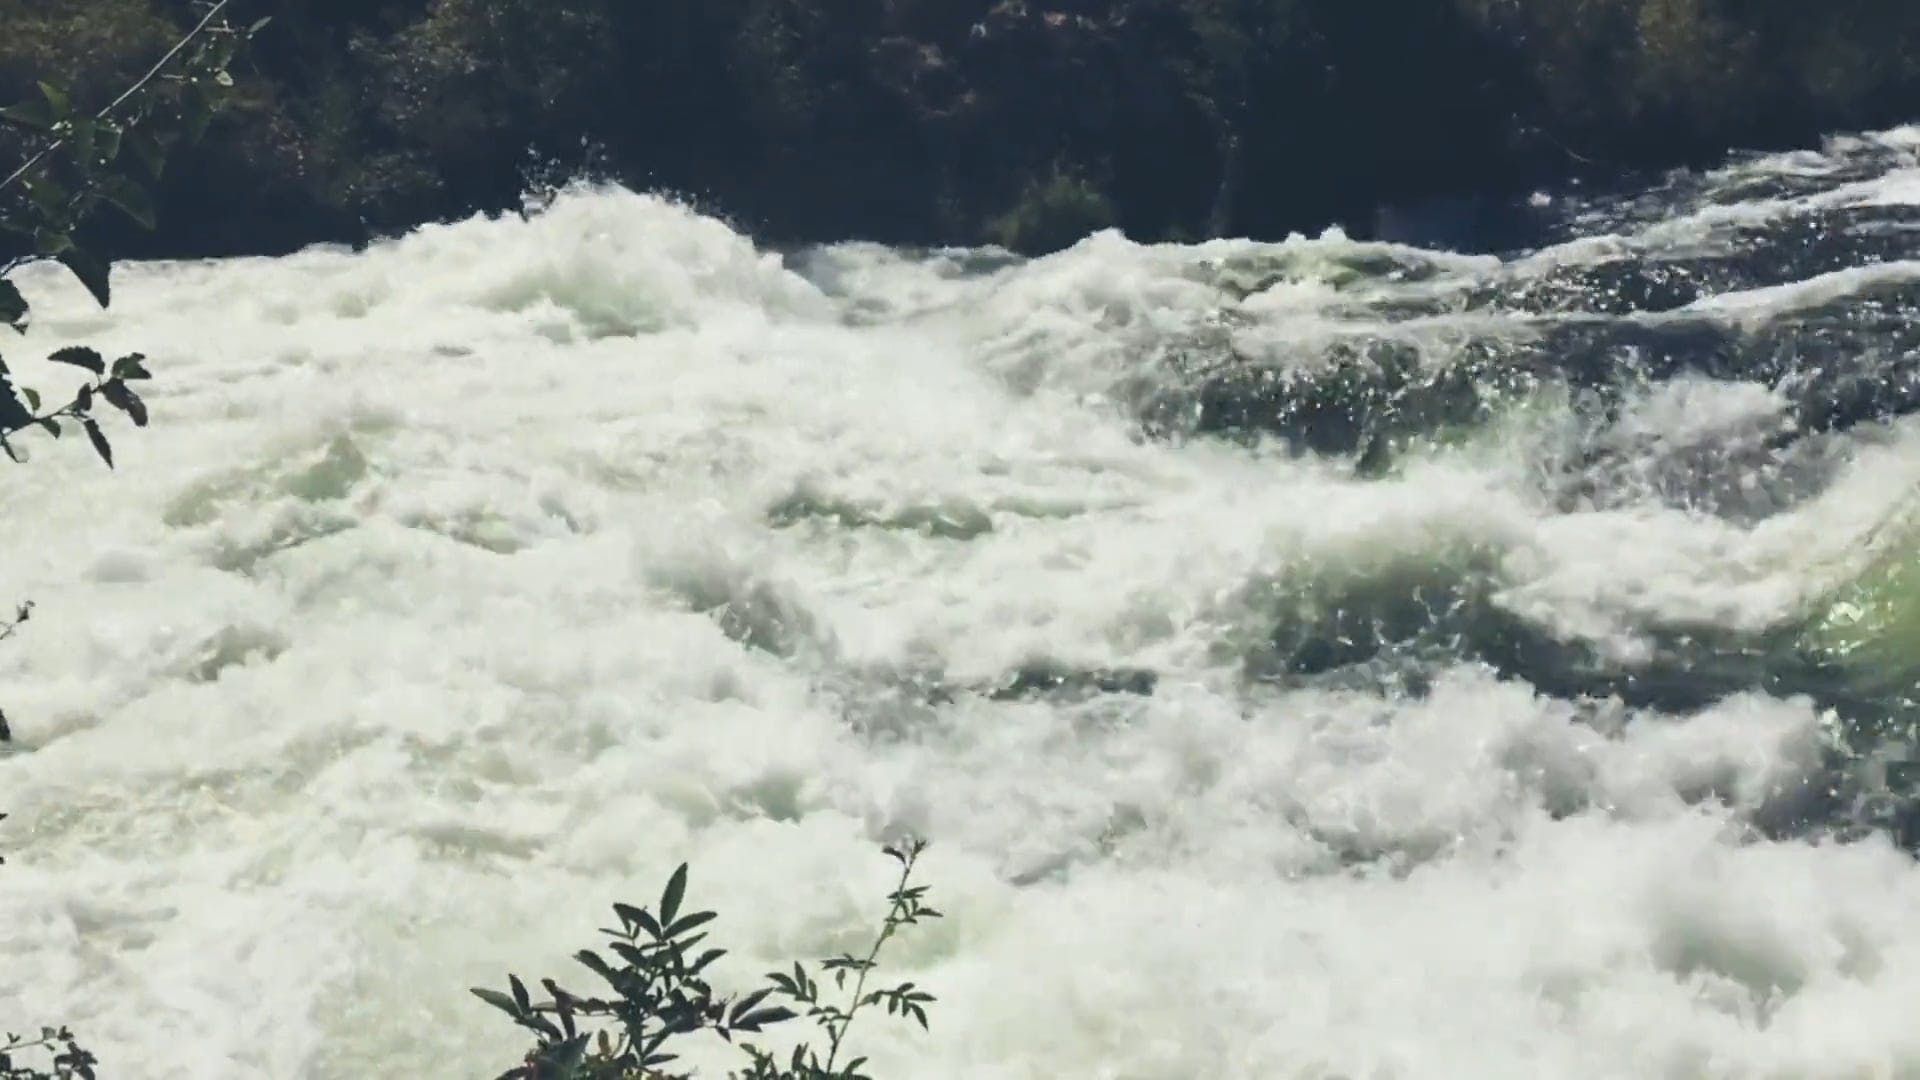 A Rapid Stream Footage